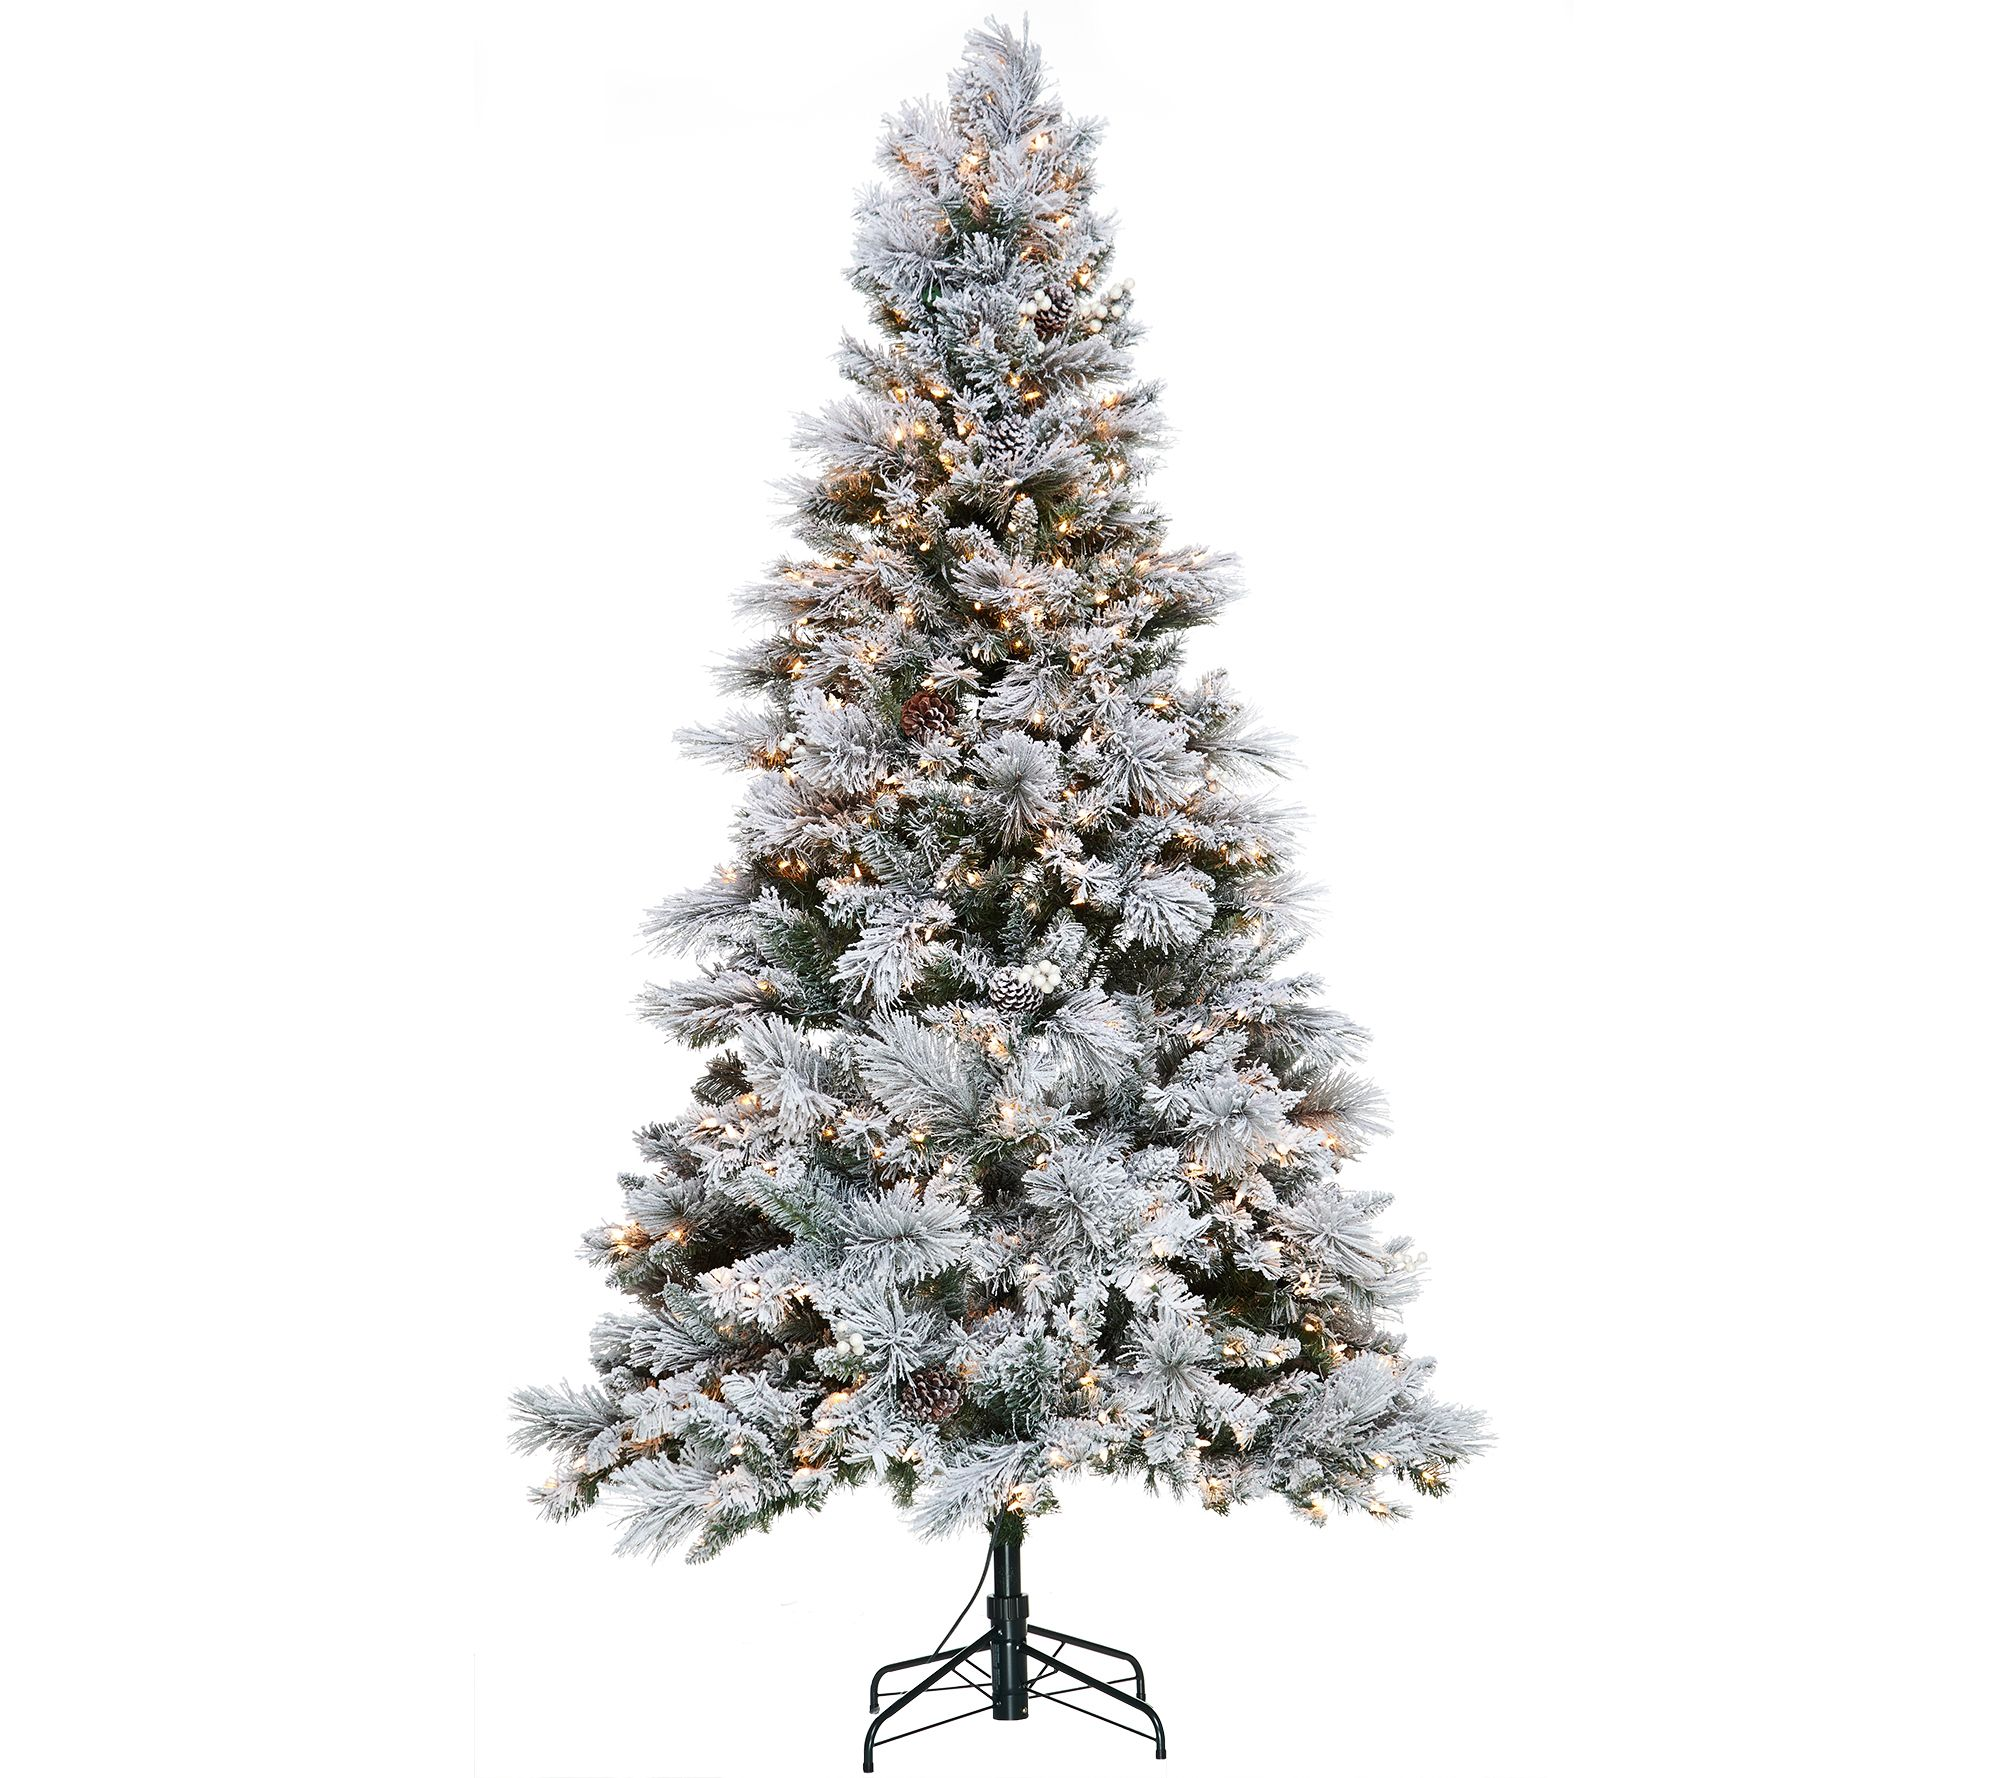 Indoor/Outdoor 6' Pre-Lit Pull-Up Christmas Tree — QVC.com